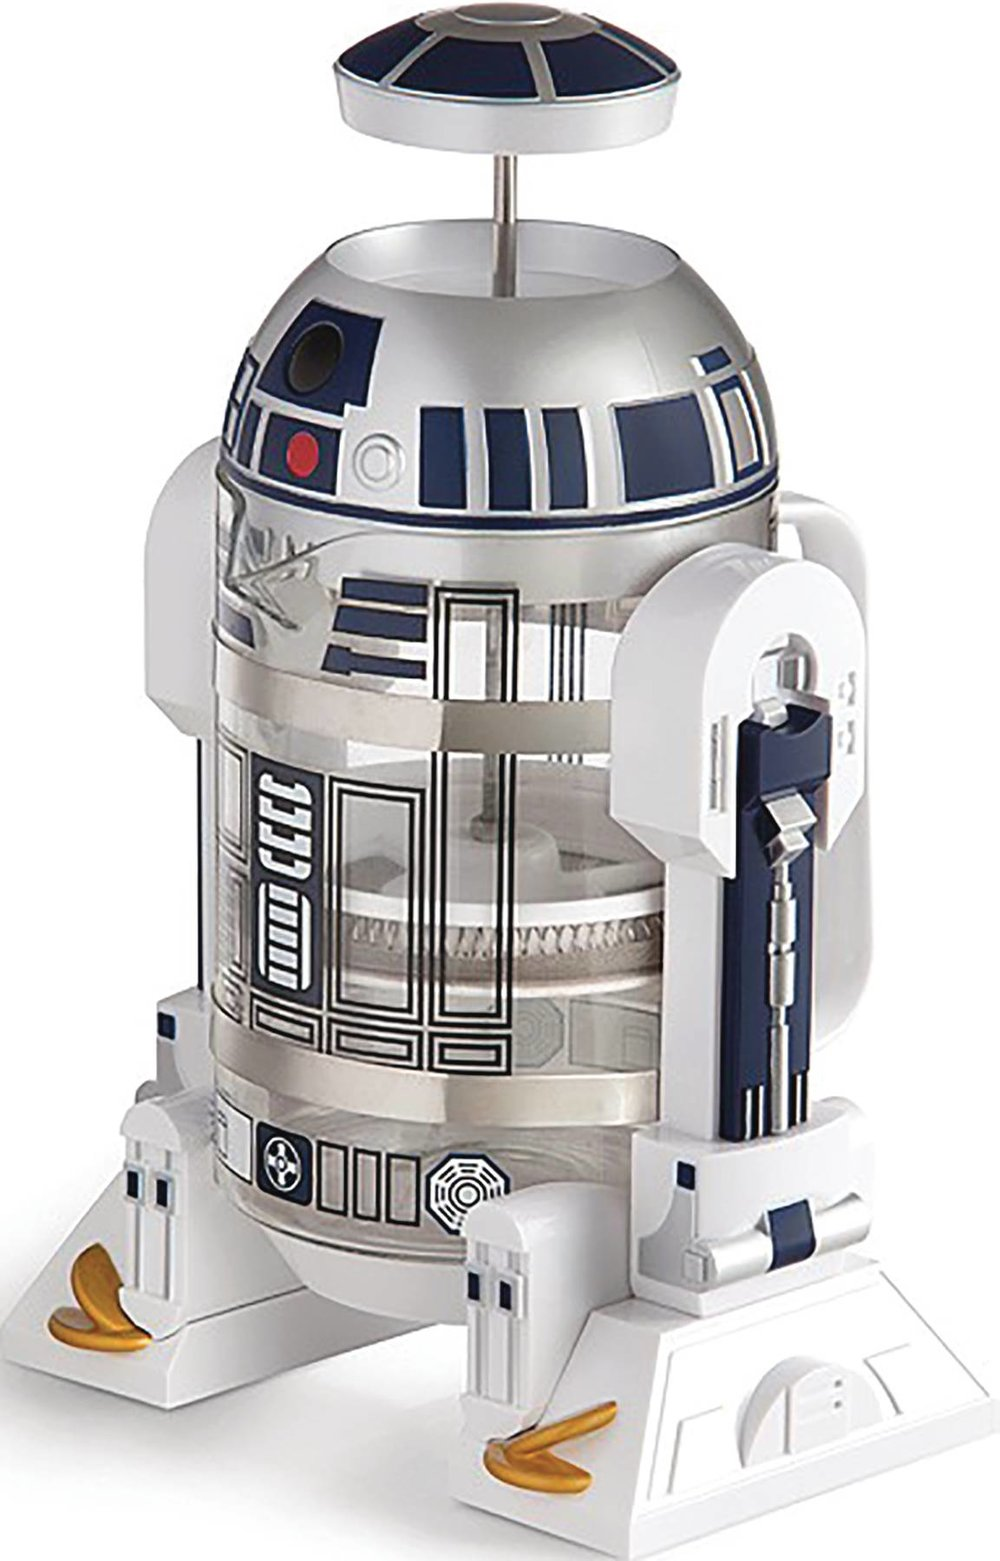 STAR WARS R2-D2 COFFEE PRESS.jpg